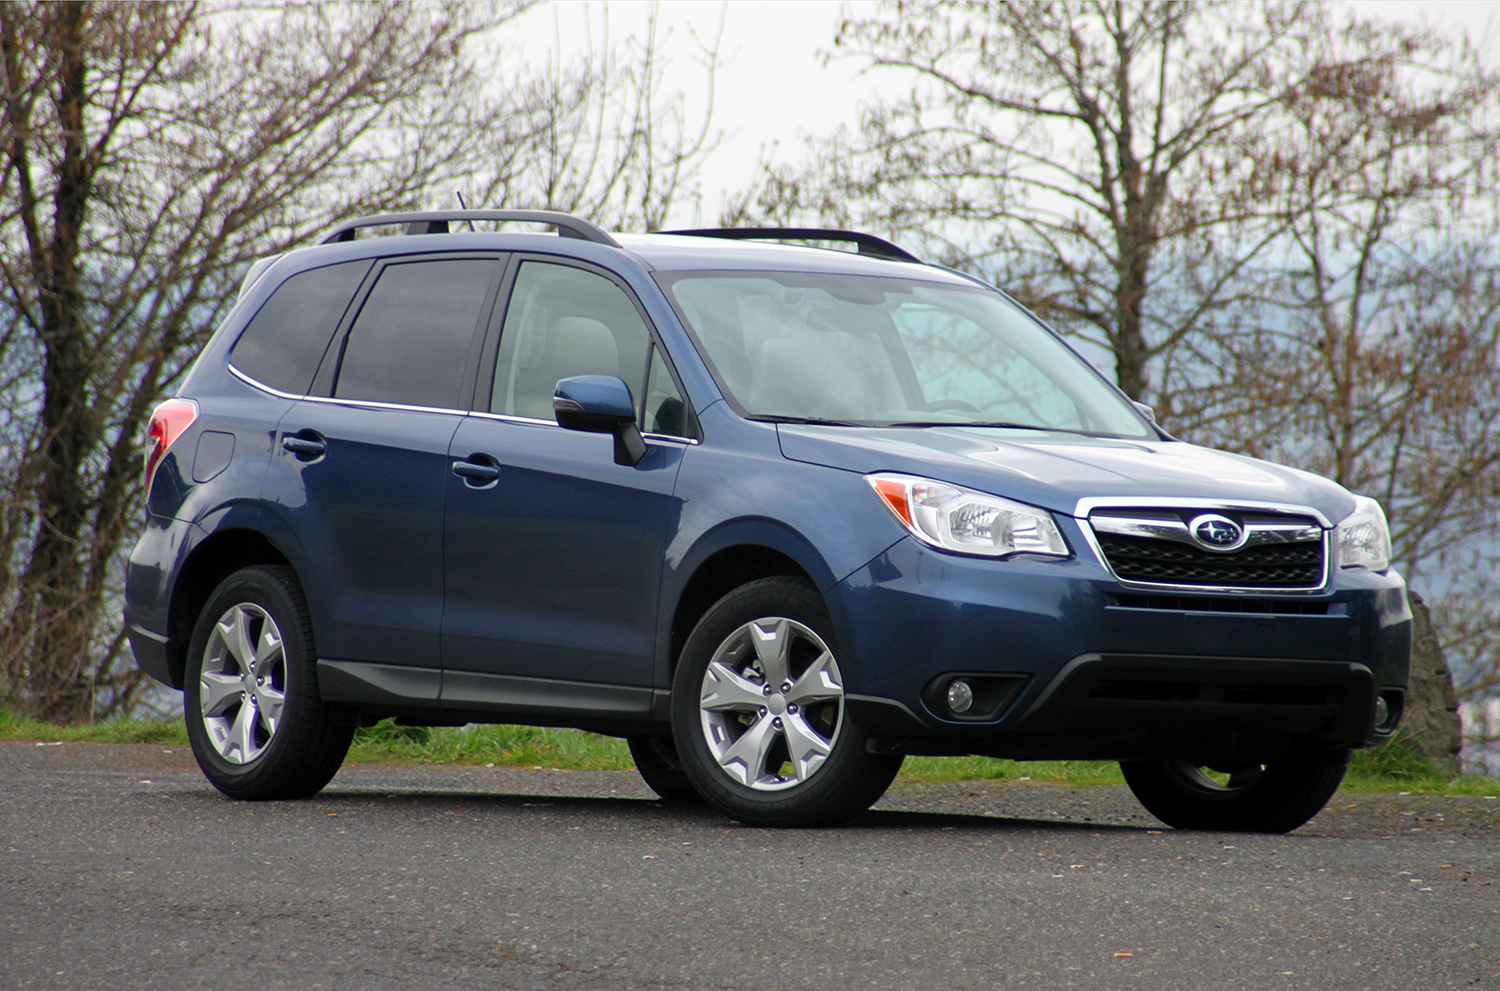 cool car wallpapers 2014 subaru outback. Black Bedroom Furniture Sets. Home Design Ideas